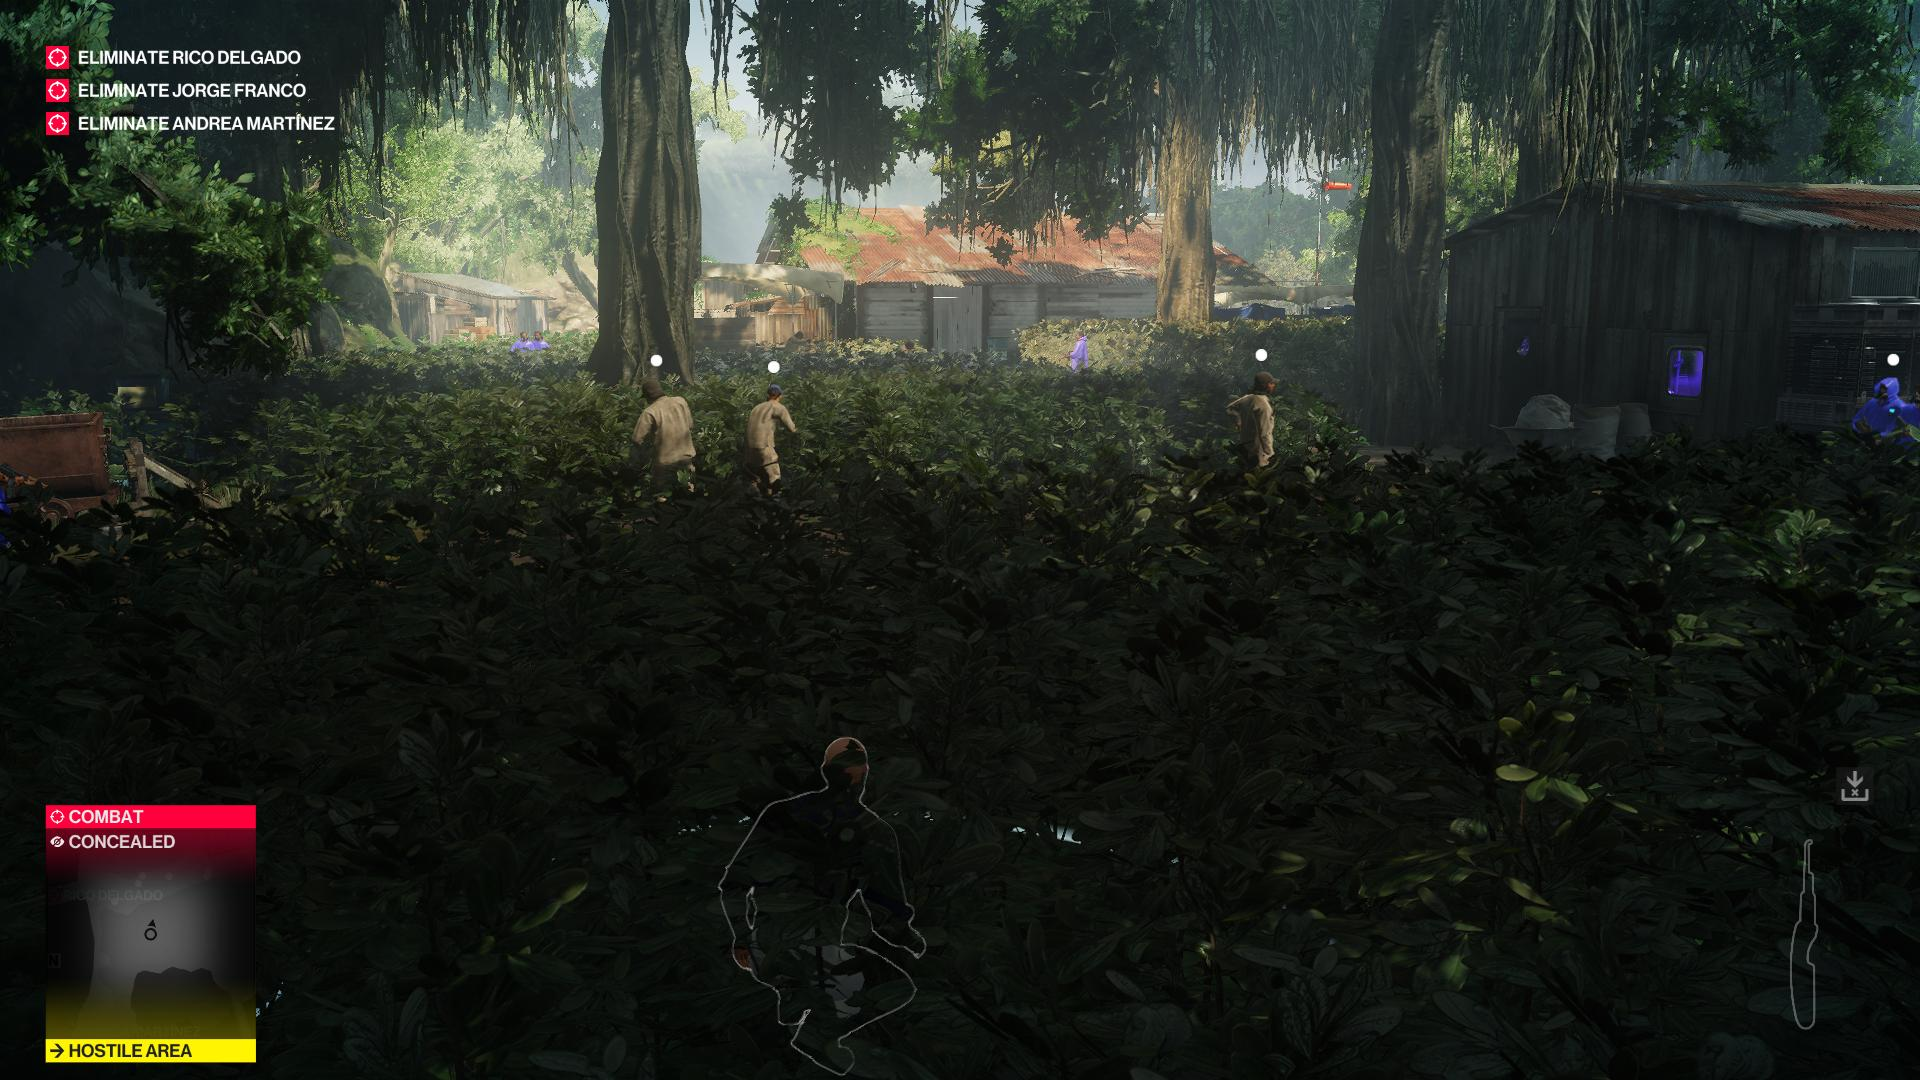 Agent 47 hiding in the foliage as three men search for him.